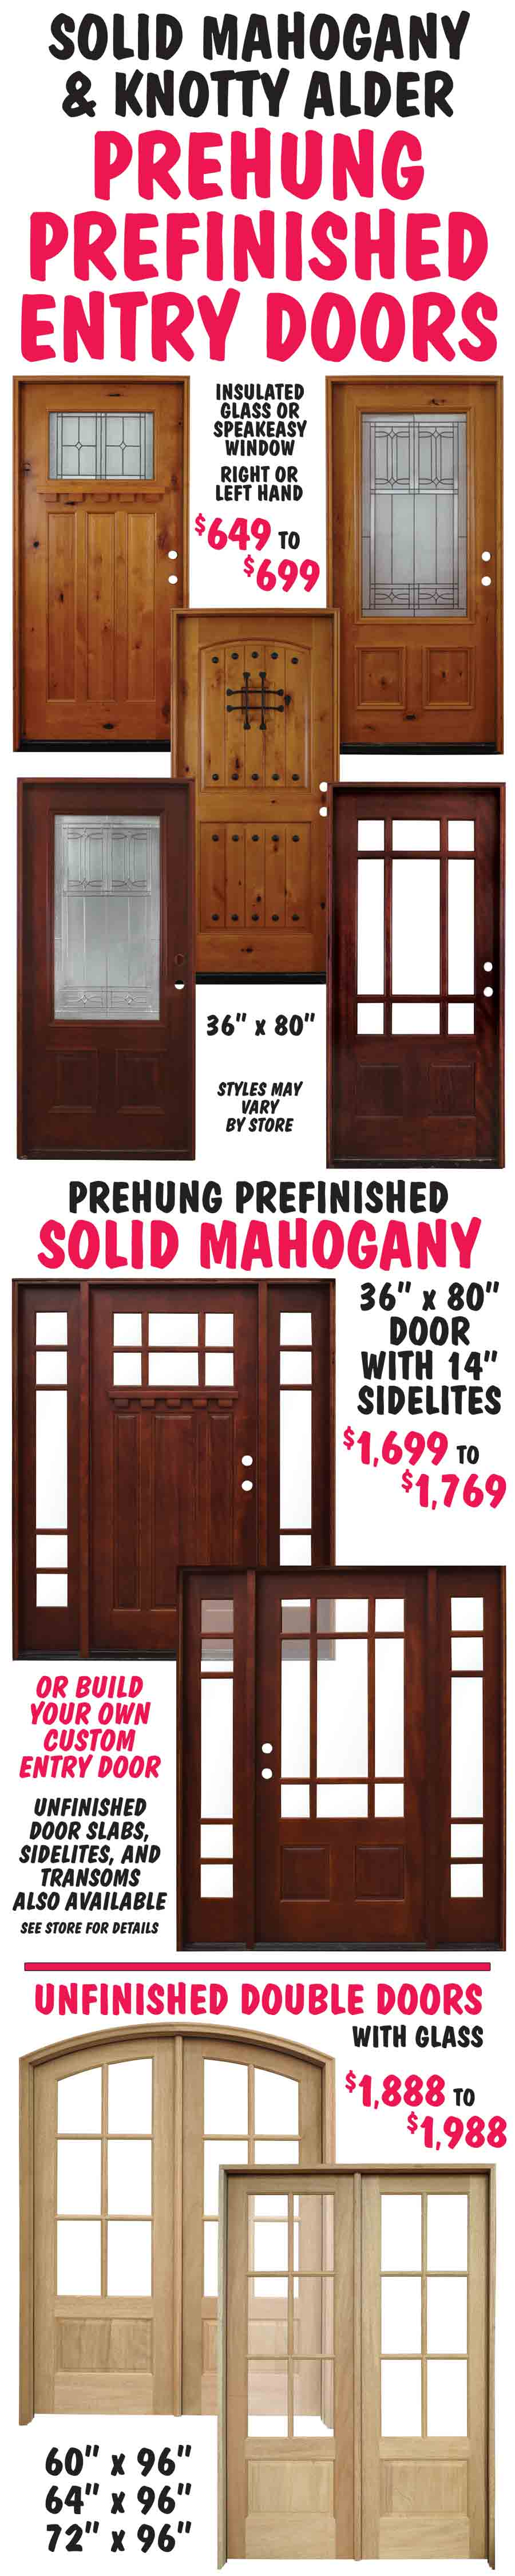 Solid Mahogany u0026 Knotty Alder Entry Doors : salvage doors nashville - pezcame.com